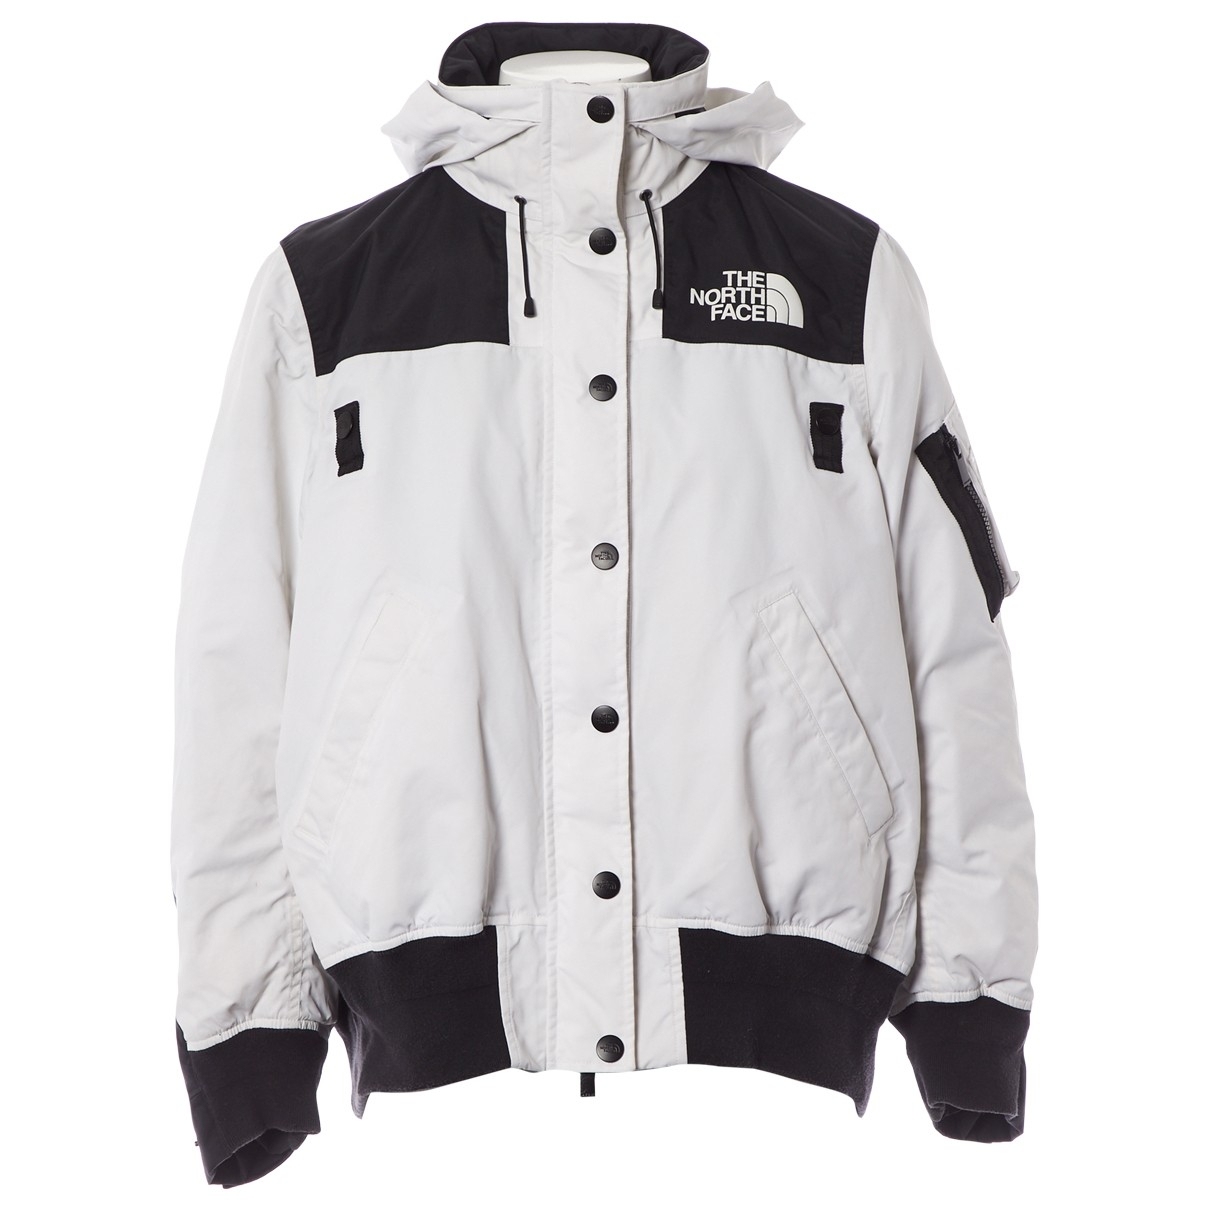 The North Face \N White jacket for Women S International